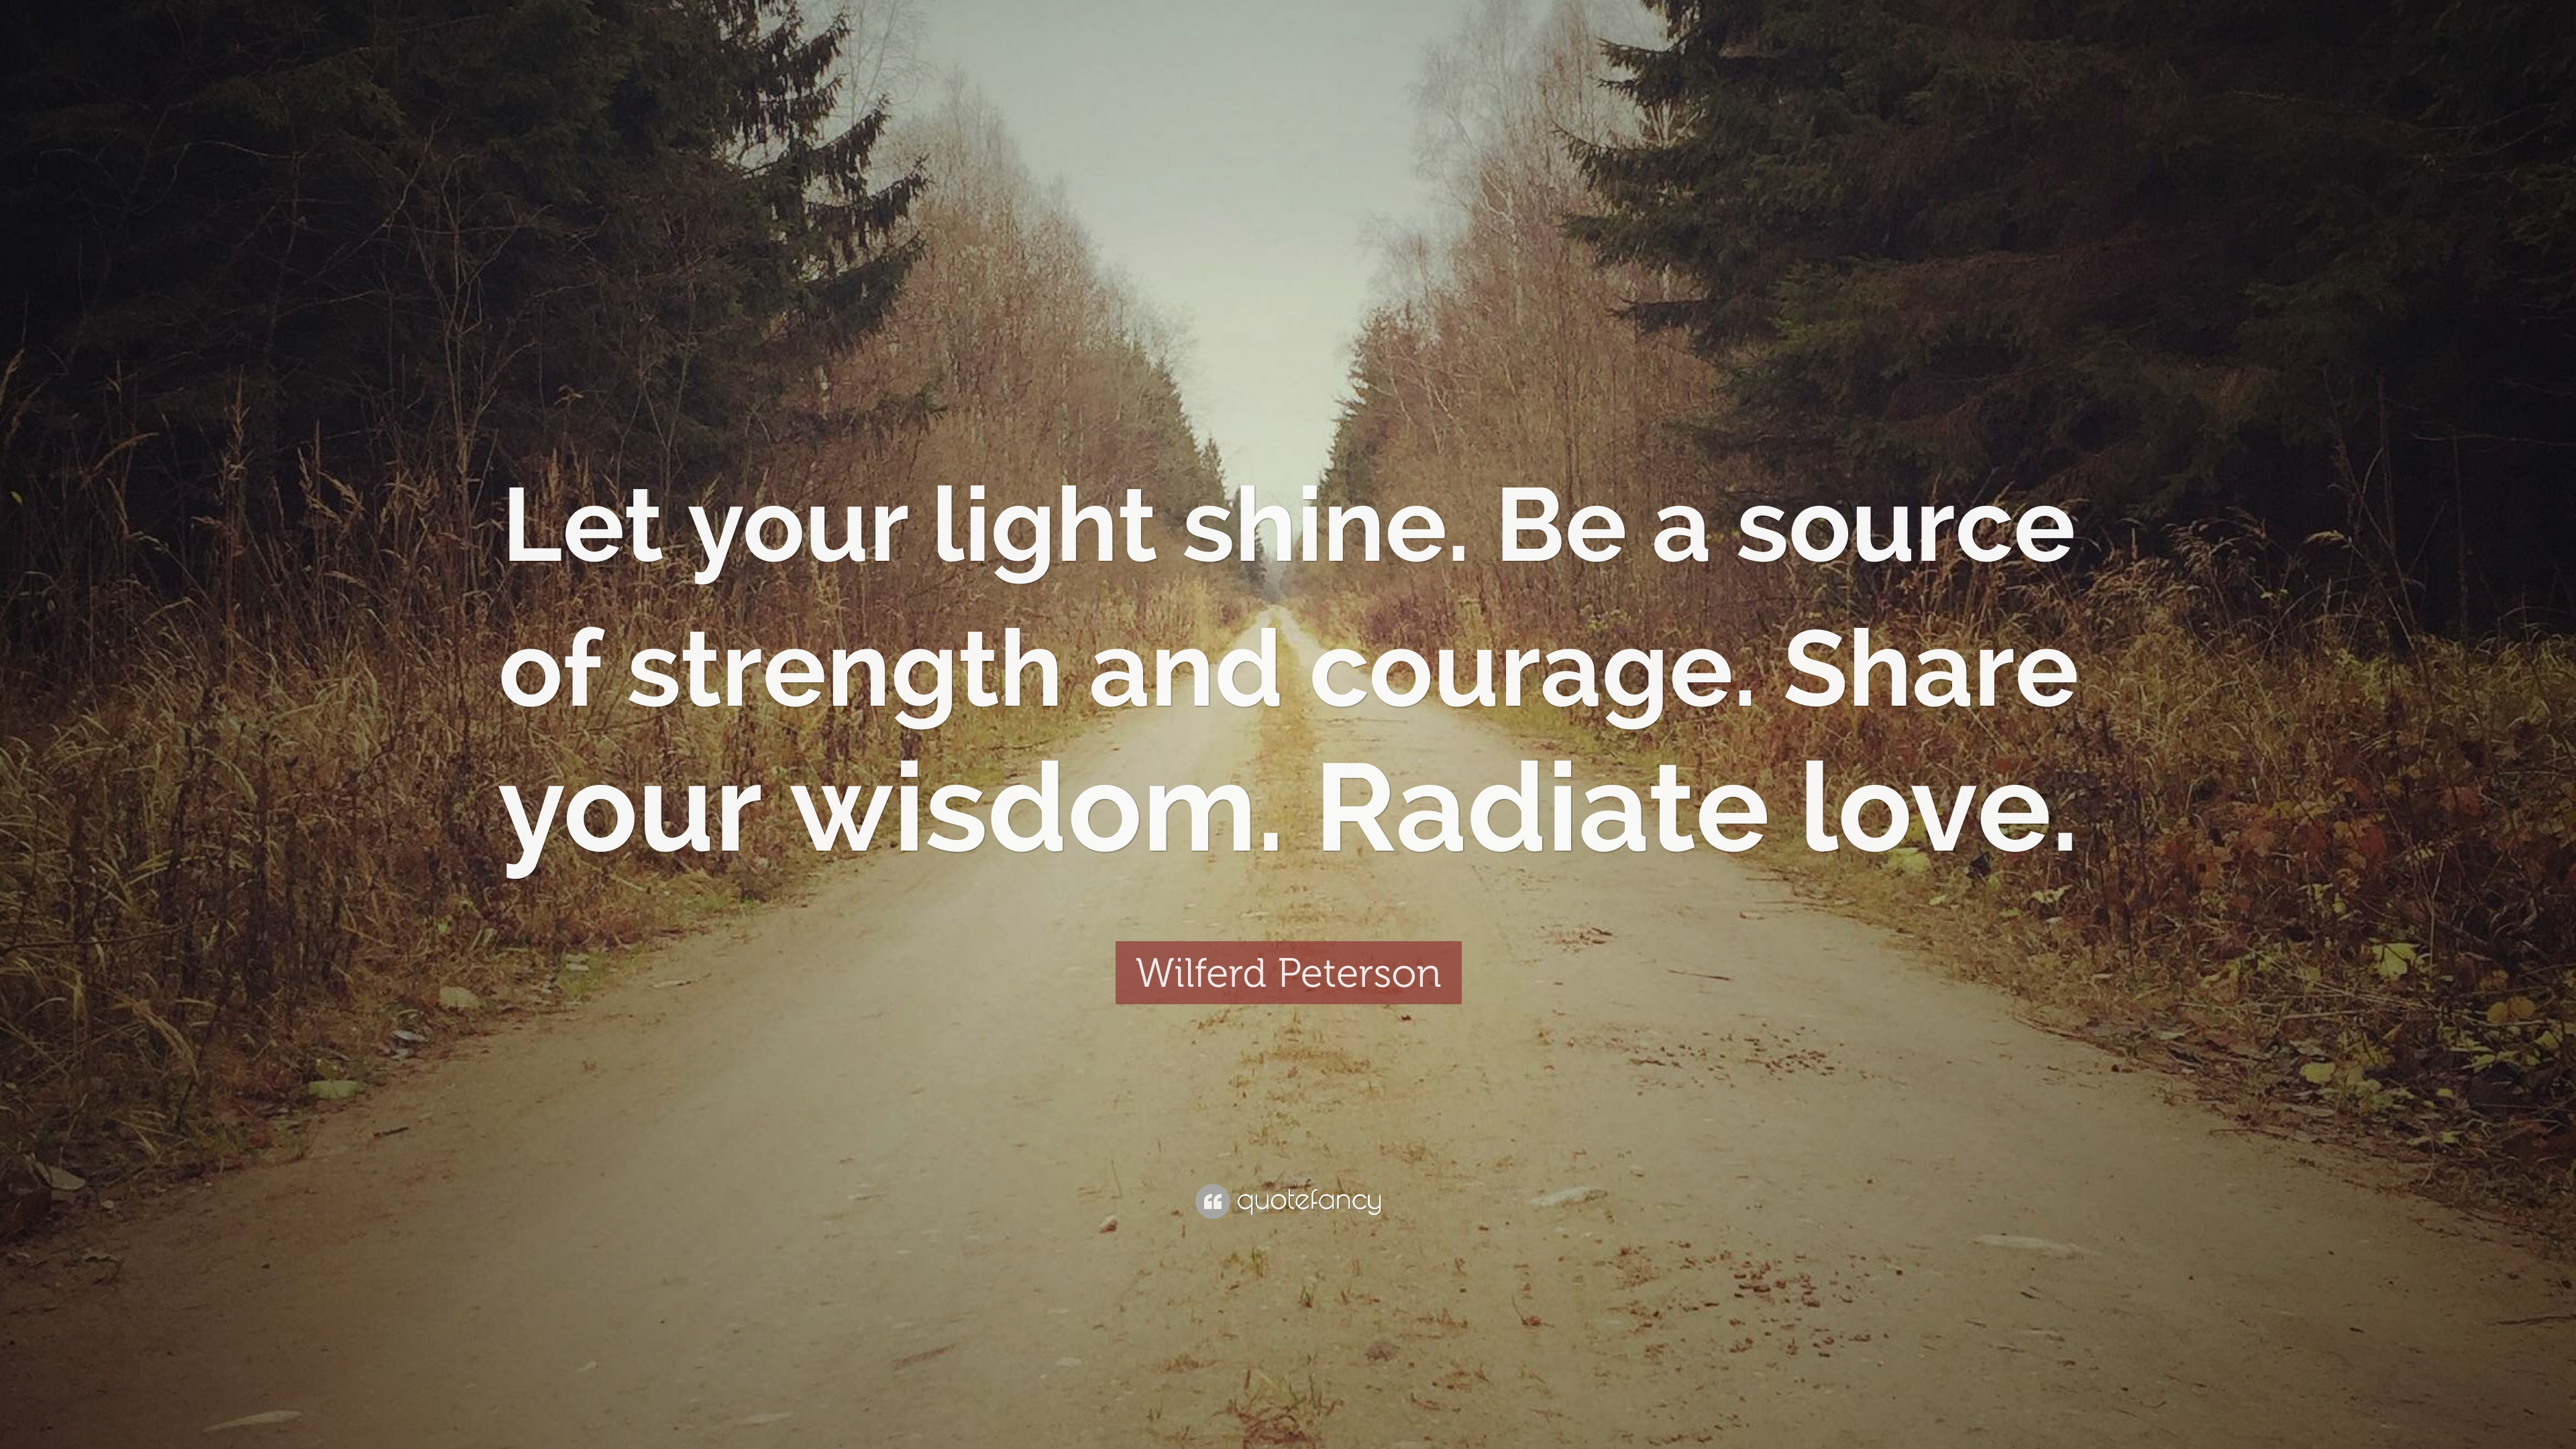 wilferd peterson quote   u201clet your light shine  be a source